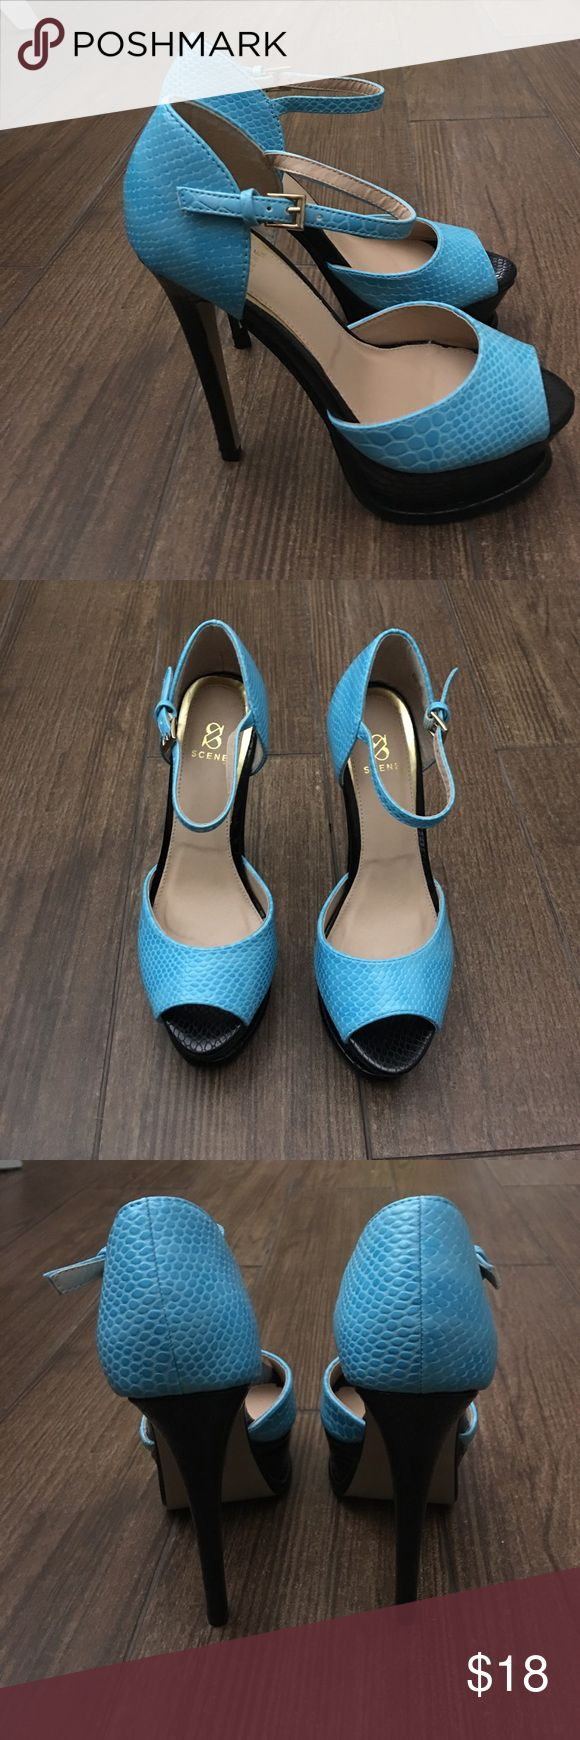 """🆕Listing Shoe Dazzle blue and black peep toe 6.5 Scene for ShoeDazzle heels. Peep toe style with one strap. Black platform and heel and bright blue top. Worn twice. Size 6.5 heel is 5 1/2"""" and platform is about 2"""" Shoe Dazzle Shoes Platforms"""